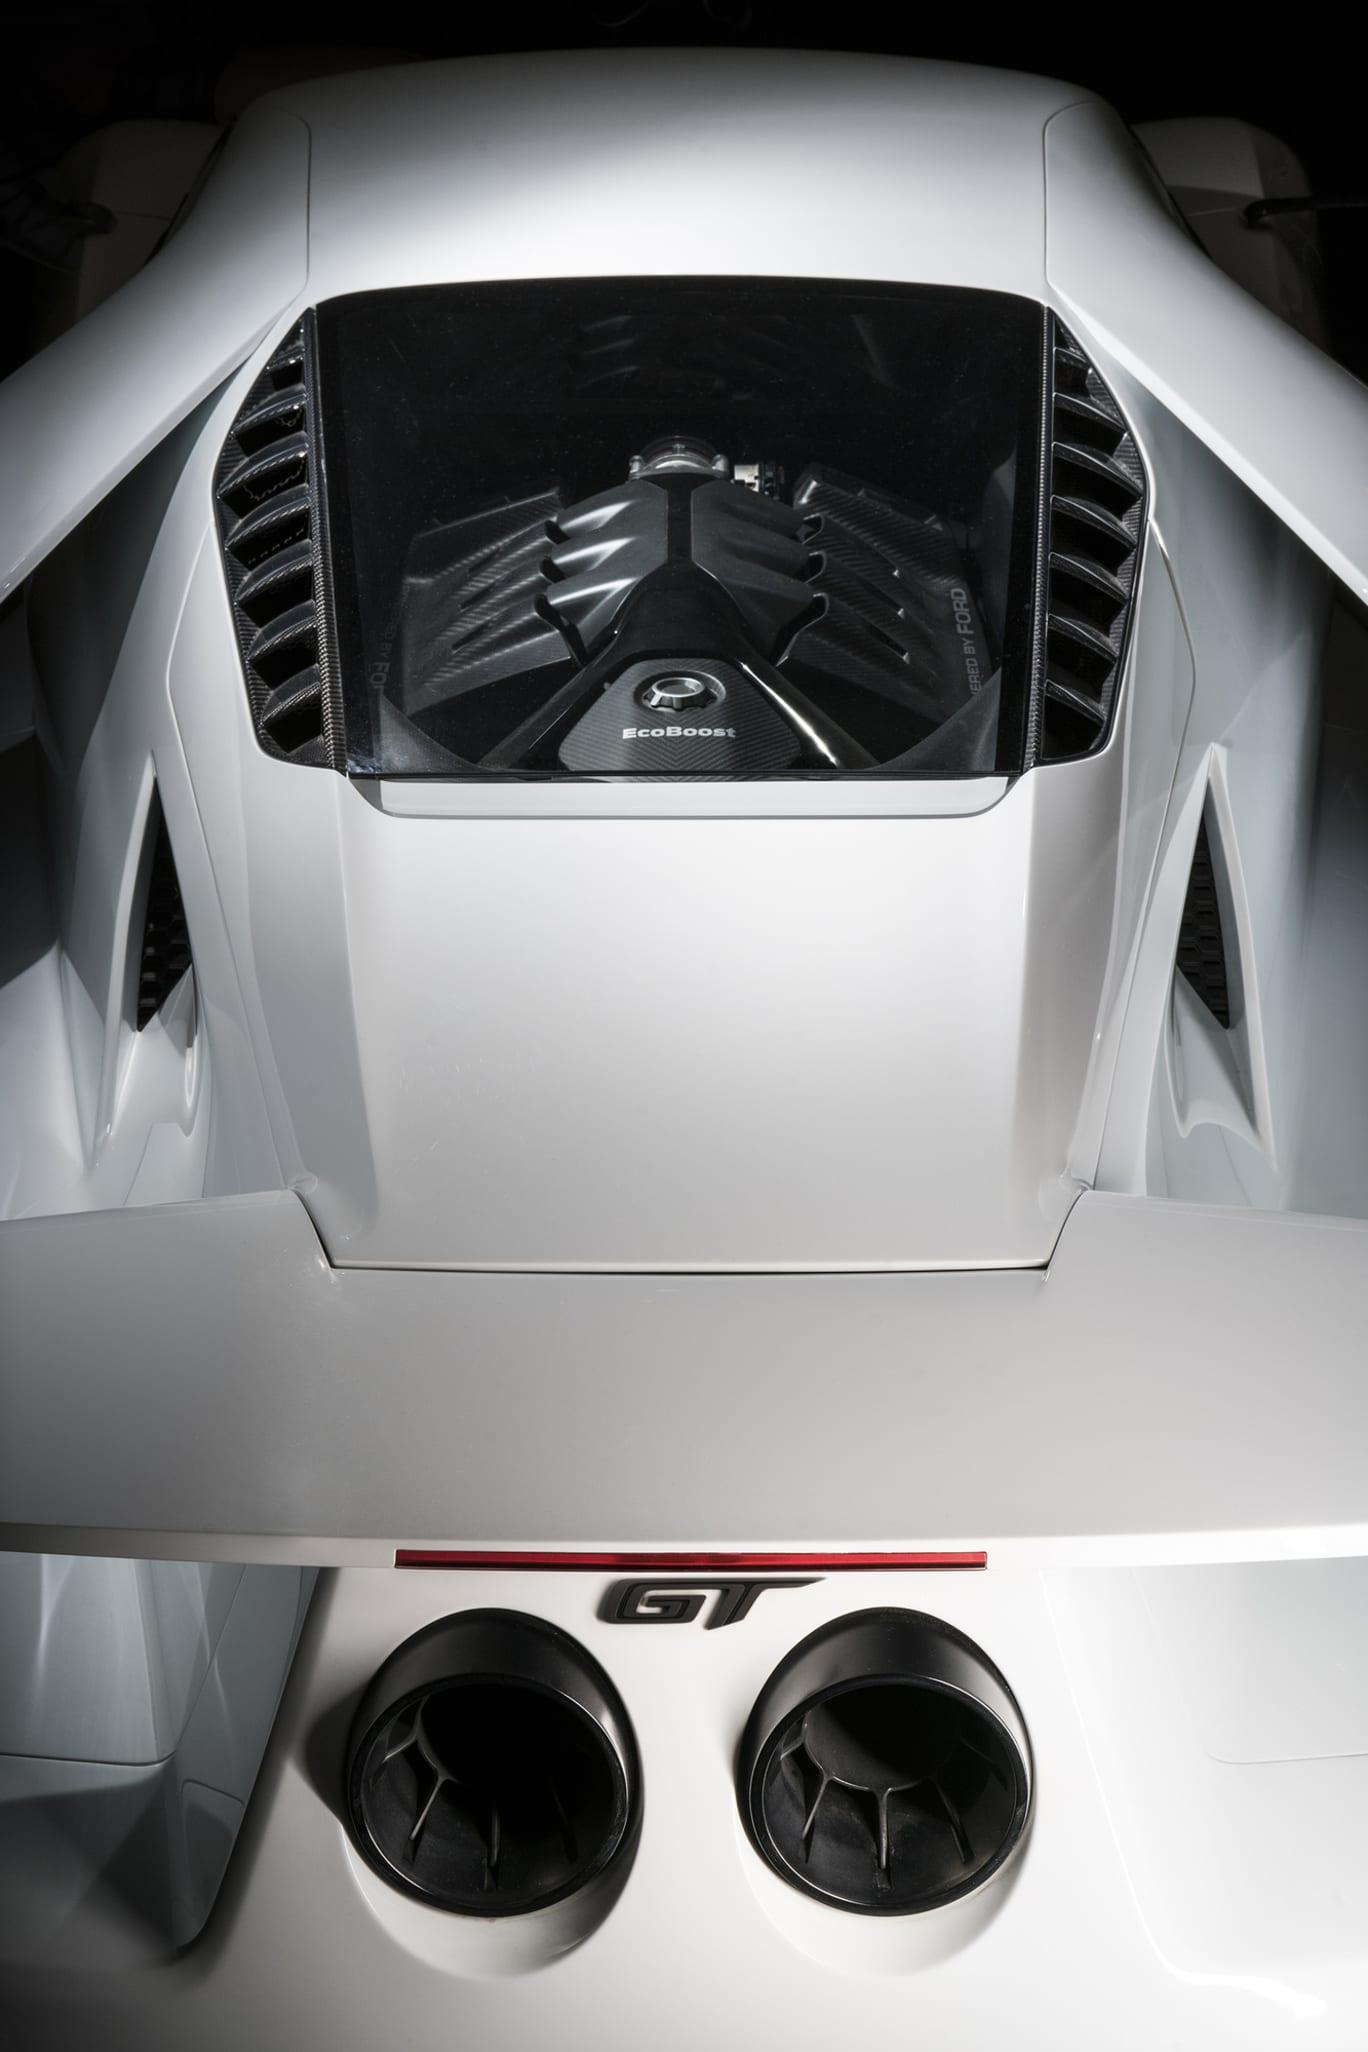 The heart of the new Ford GT is a 3.5-liter V6 engine with twin turbocharger and 647 horsepower. At the rear there are two large end pipes with a GT logo between.